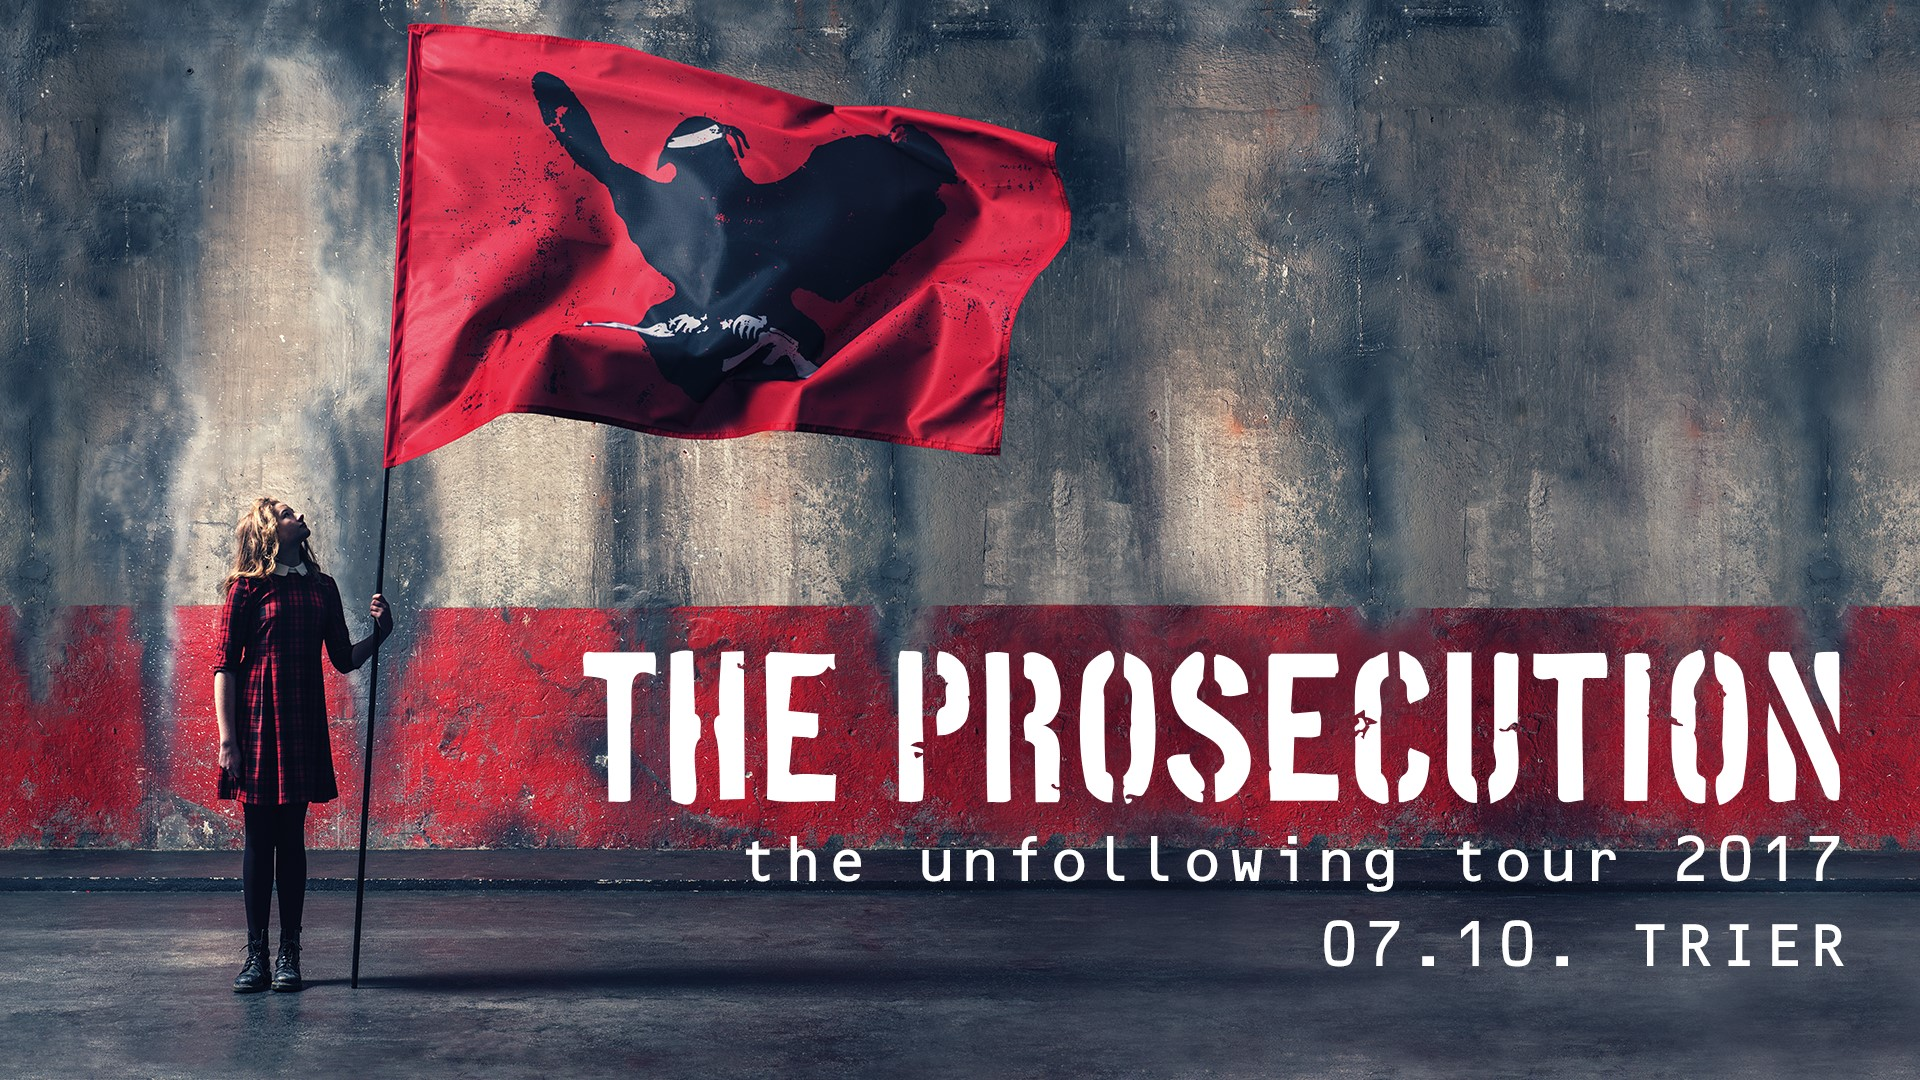 The Prosecution